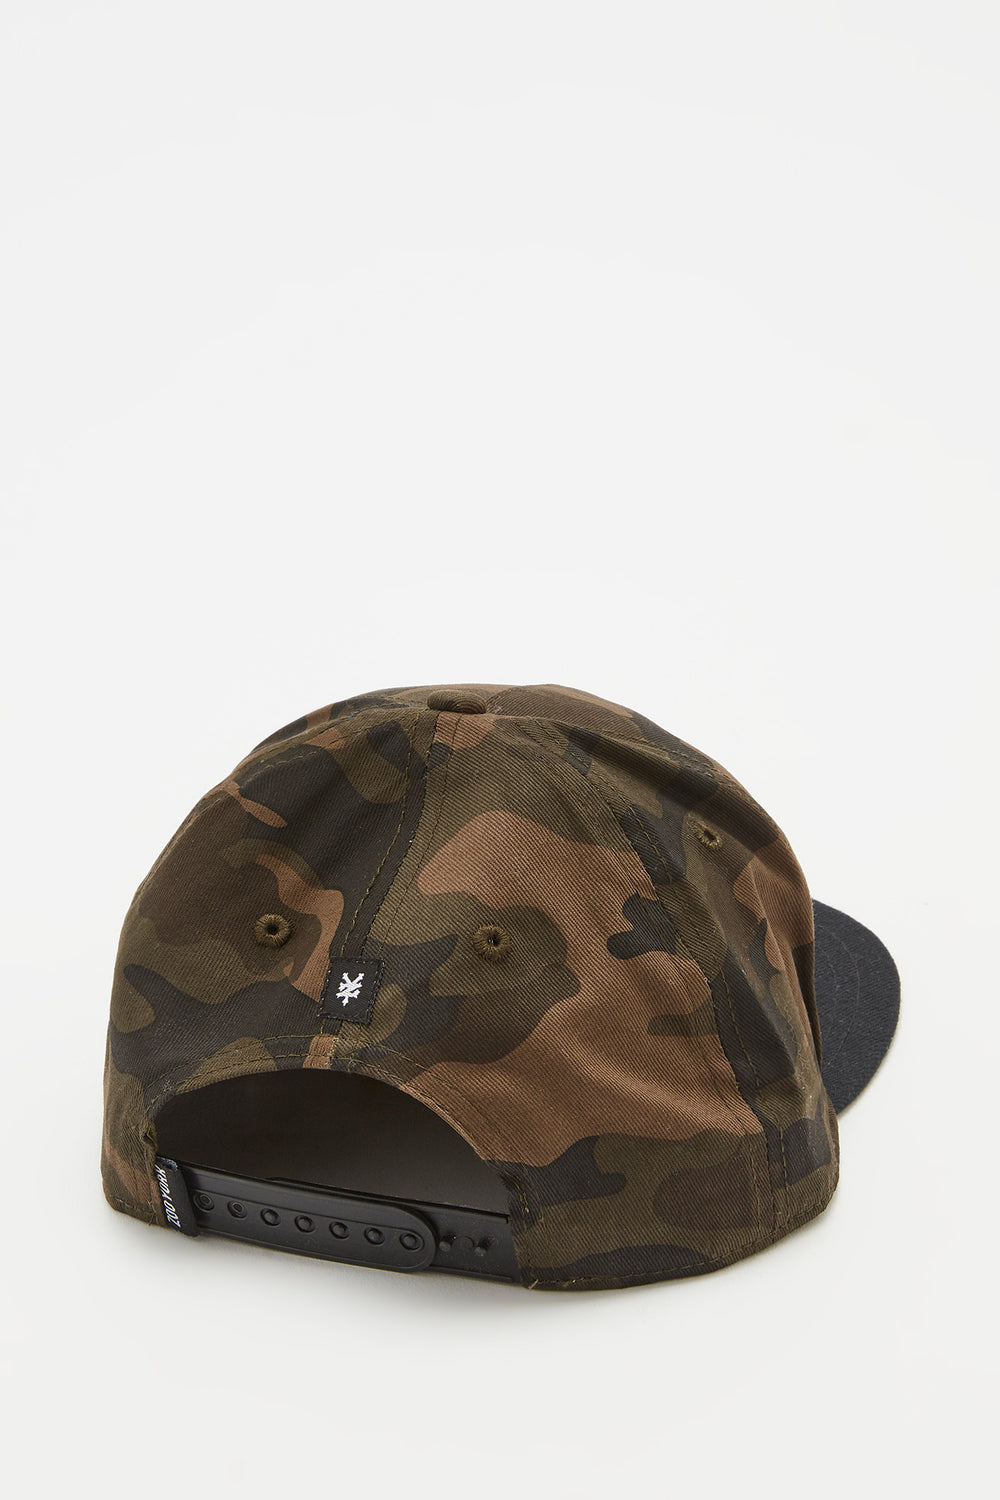 Casquette Camouflage Zoo York Homme Camoufle